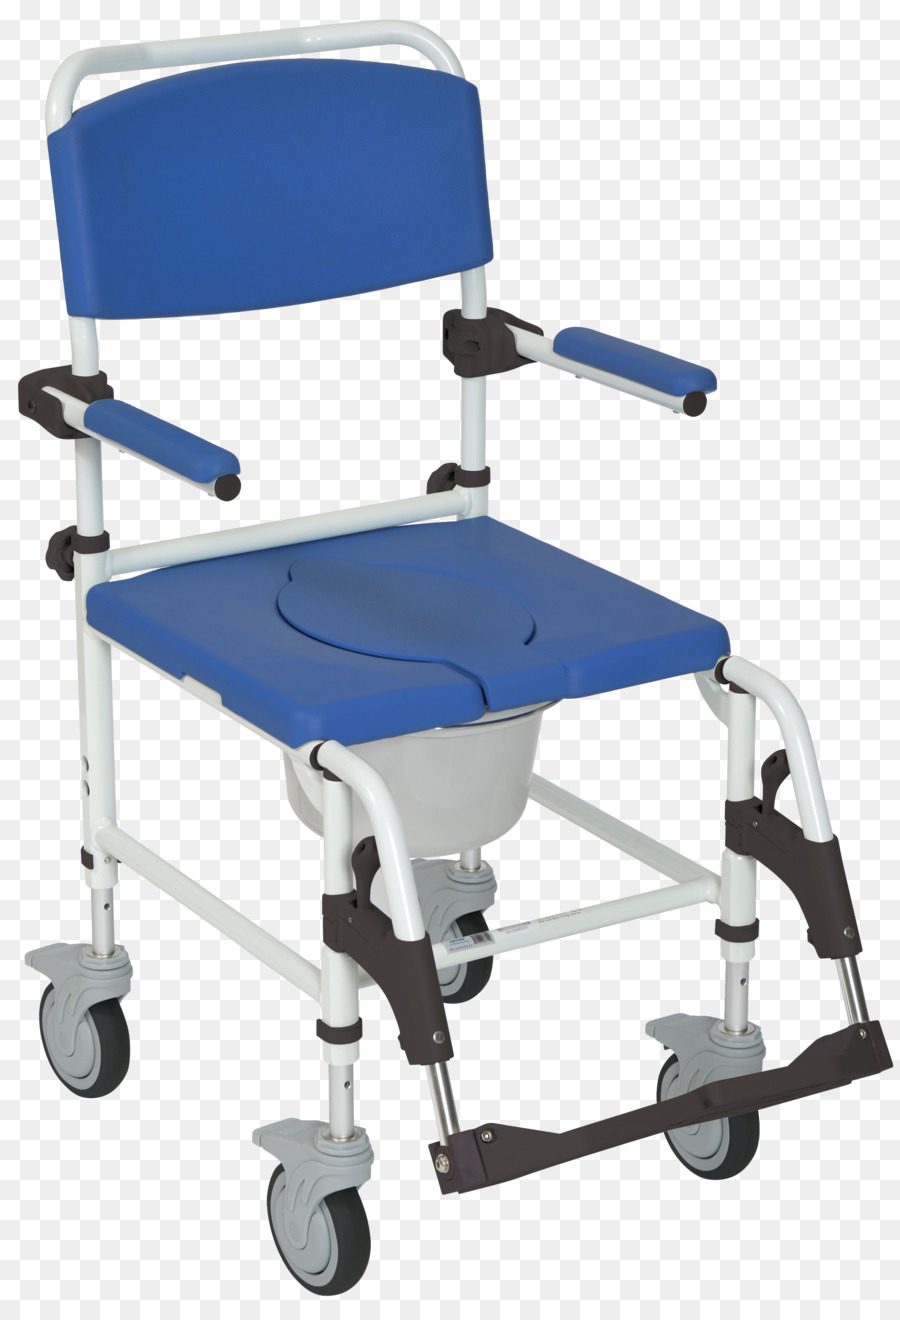 Commode chair Shower Transfer bench - chair png download - 2665*3886 ...